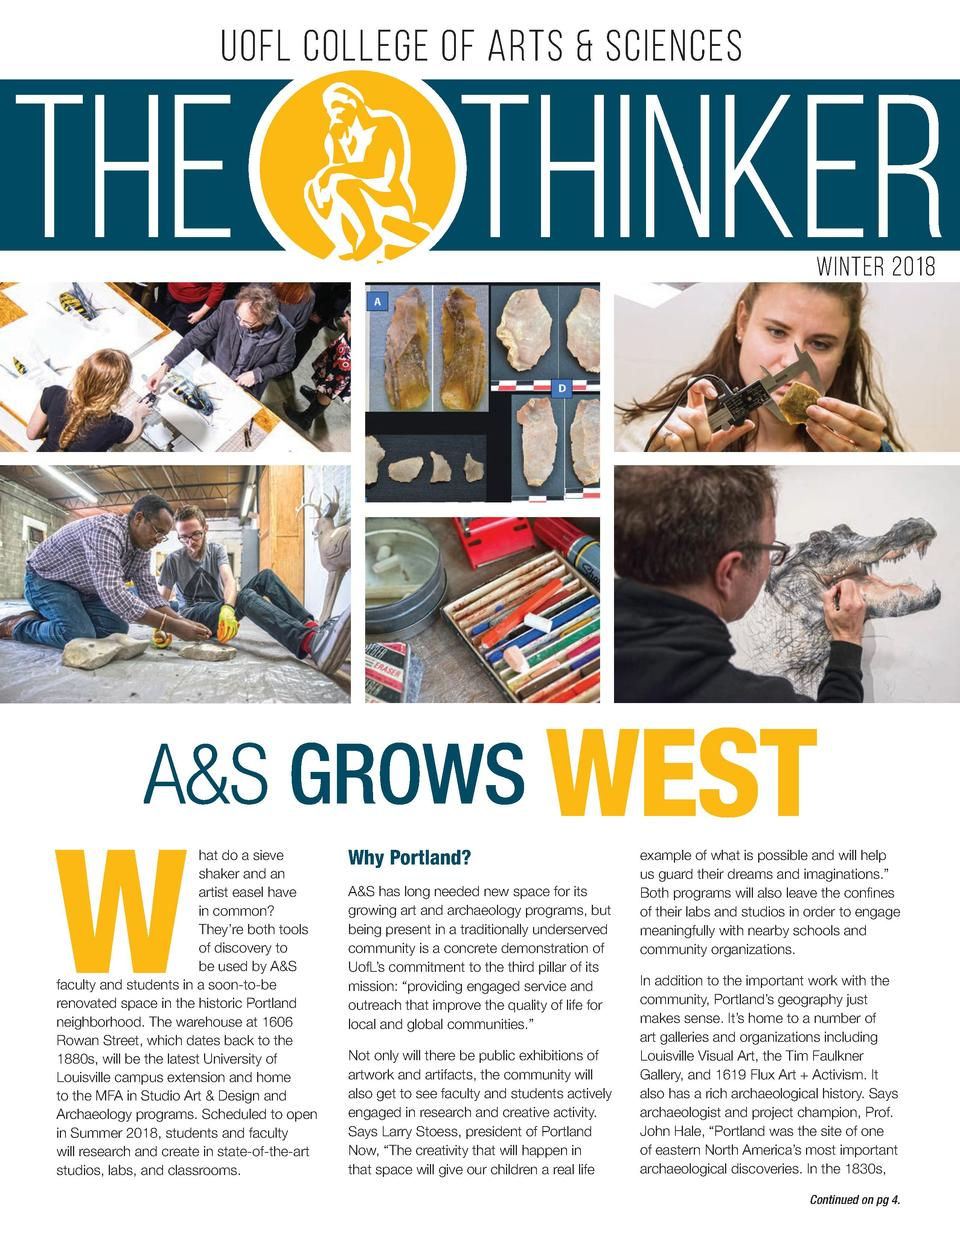 UofL College of Arts   Sciences  THE  THINKER winter 2018  A S GROWS WEST  W  hat do a sieve shaker and an artist easel ha...